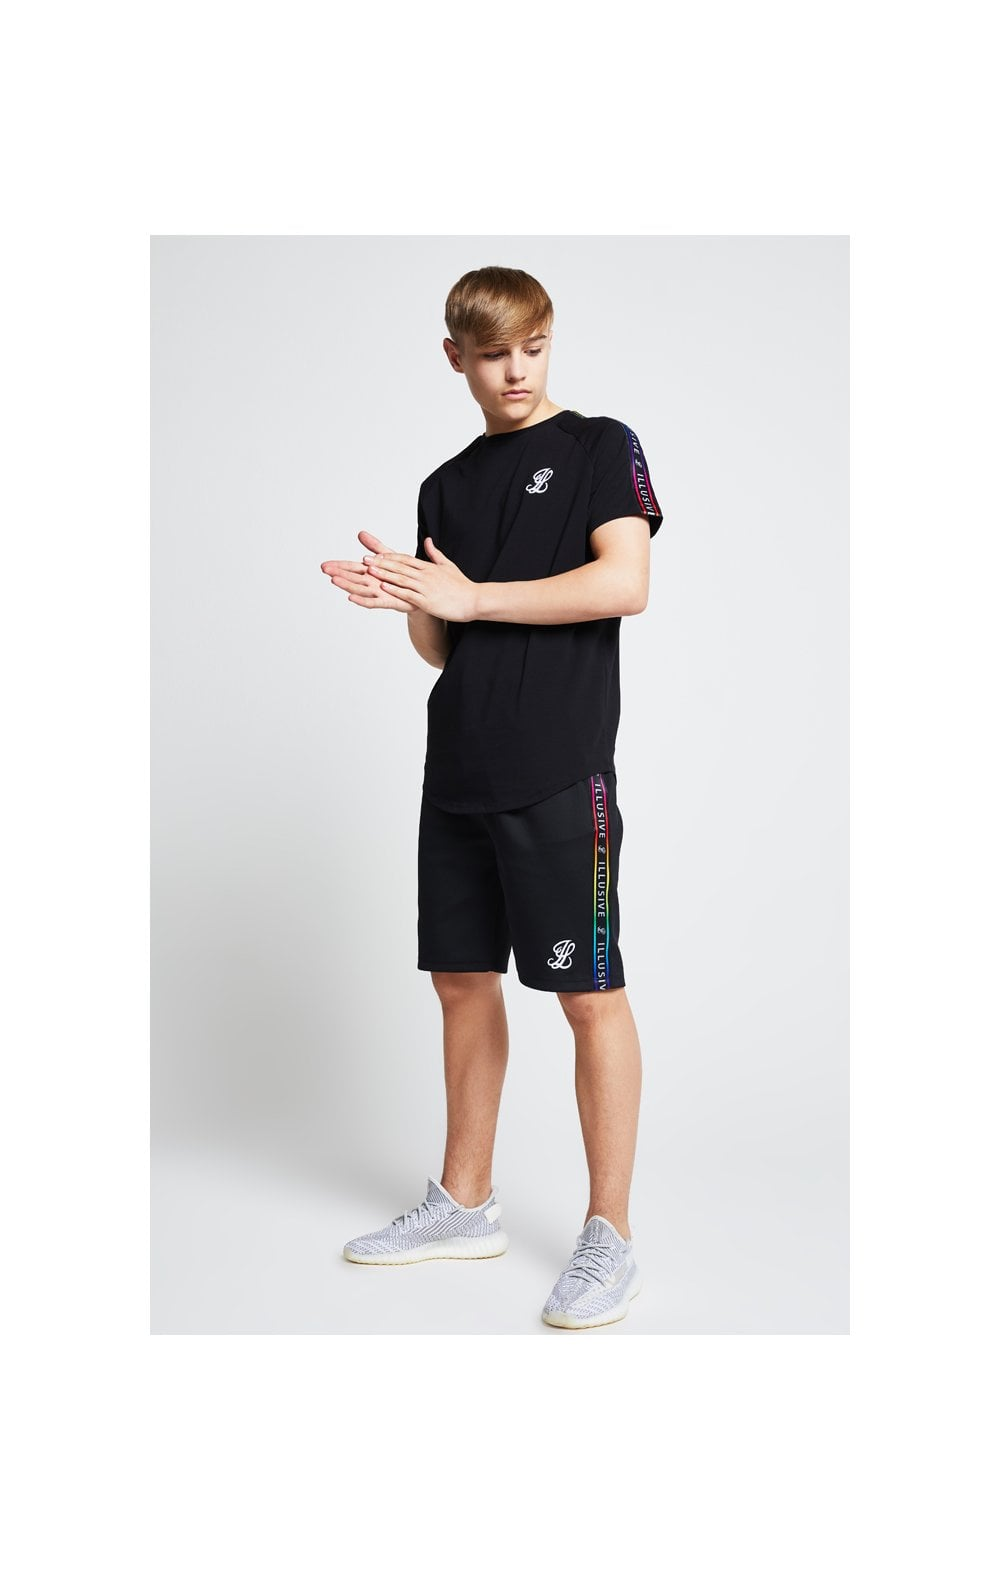 Illusive London Taped Raglan Tee - Black (3)